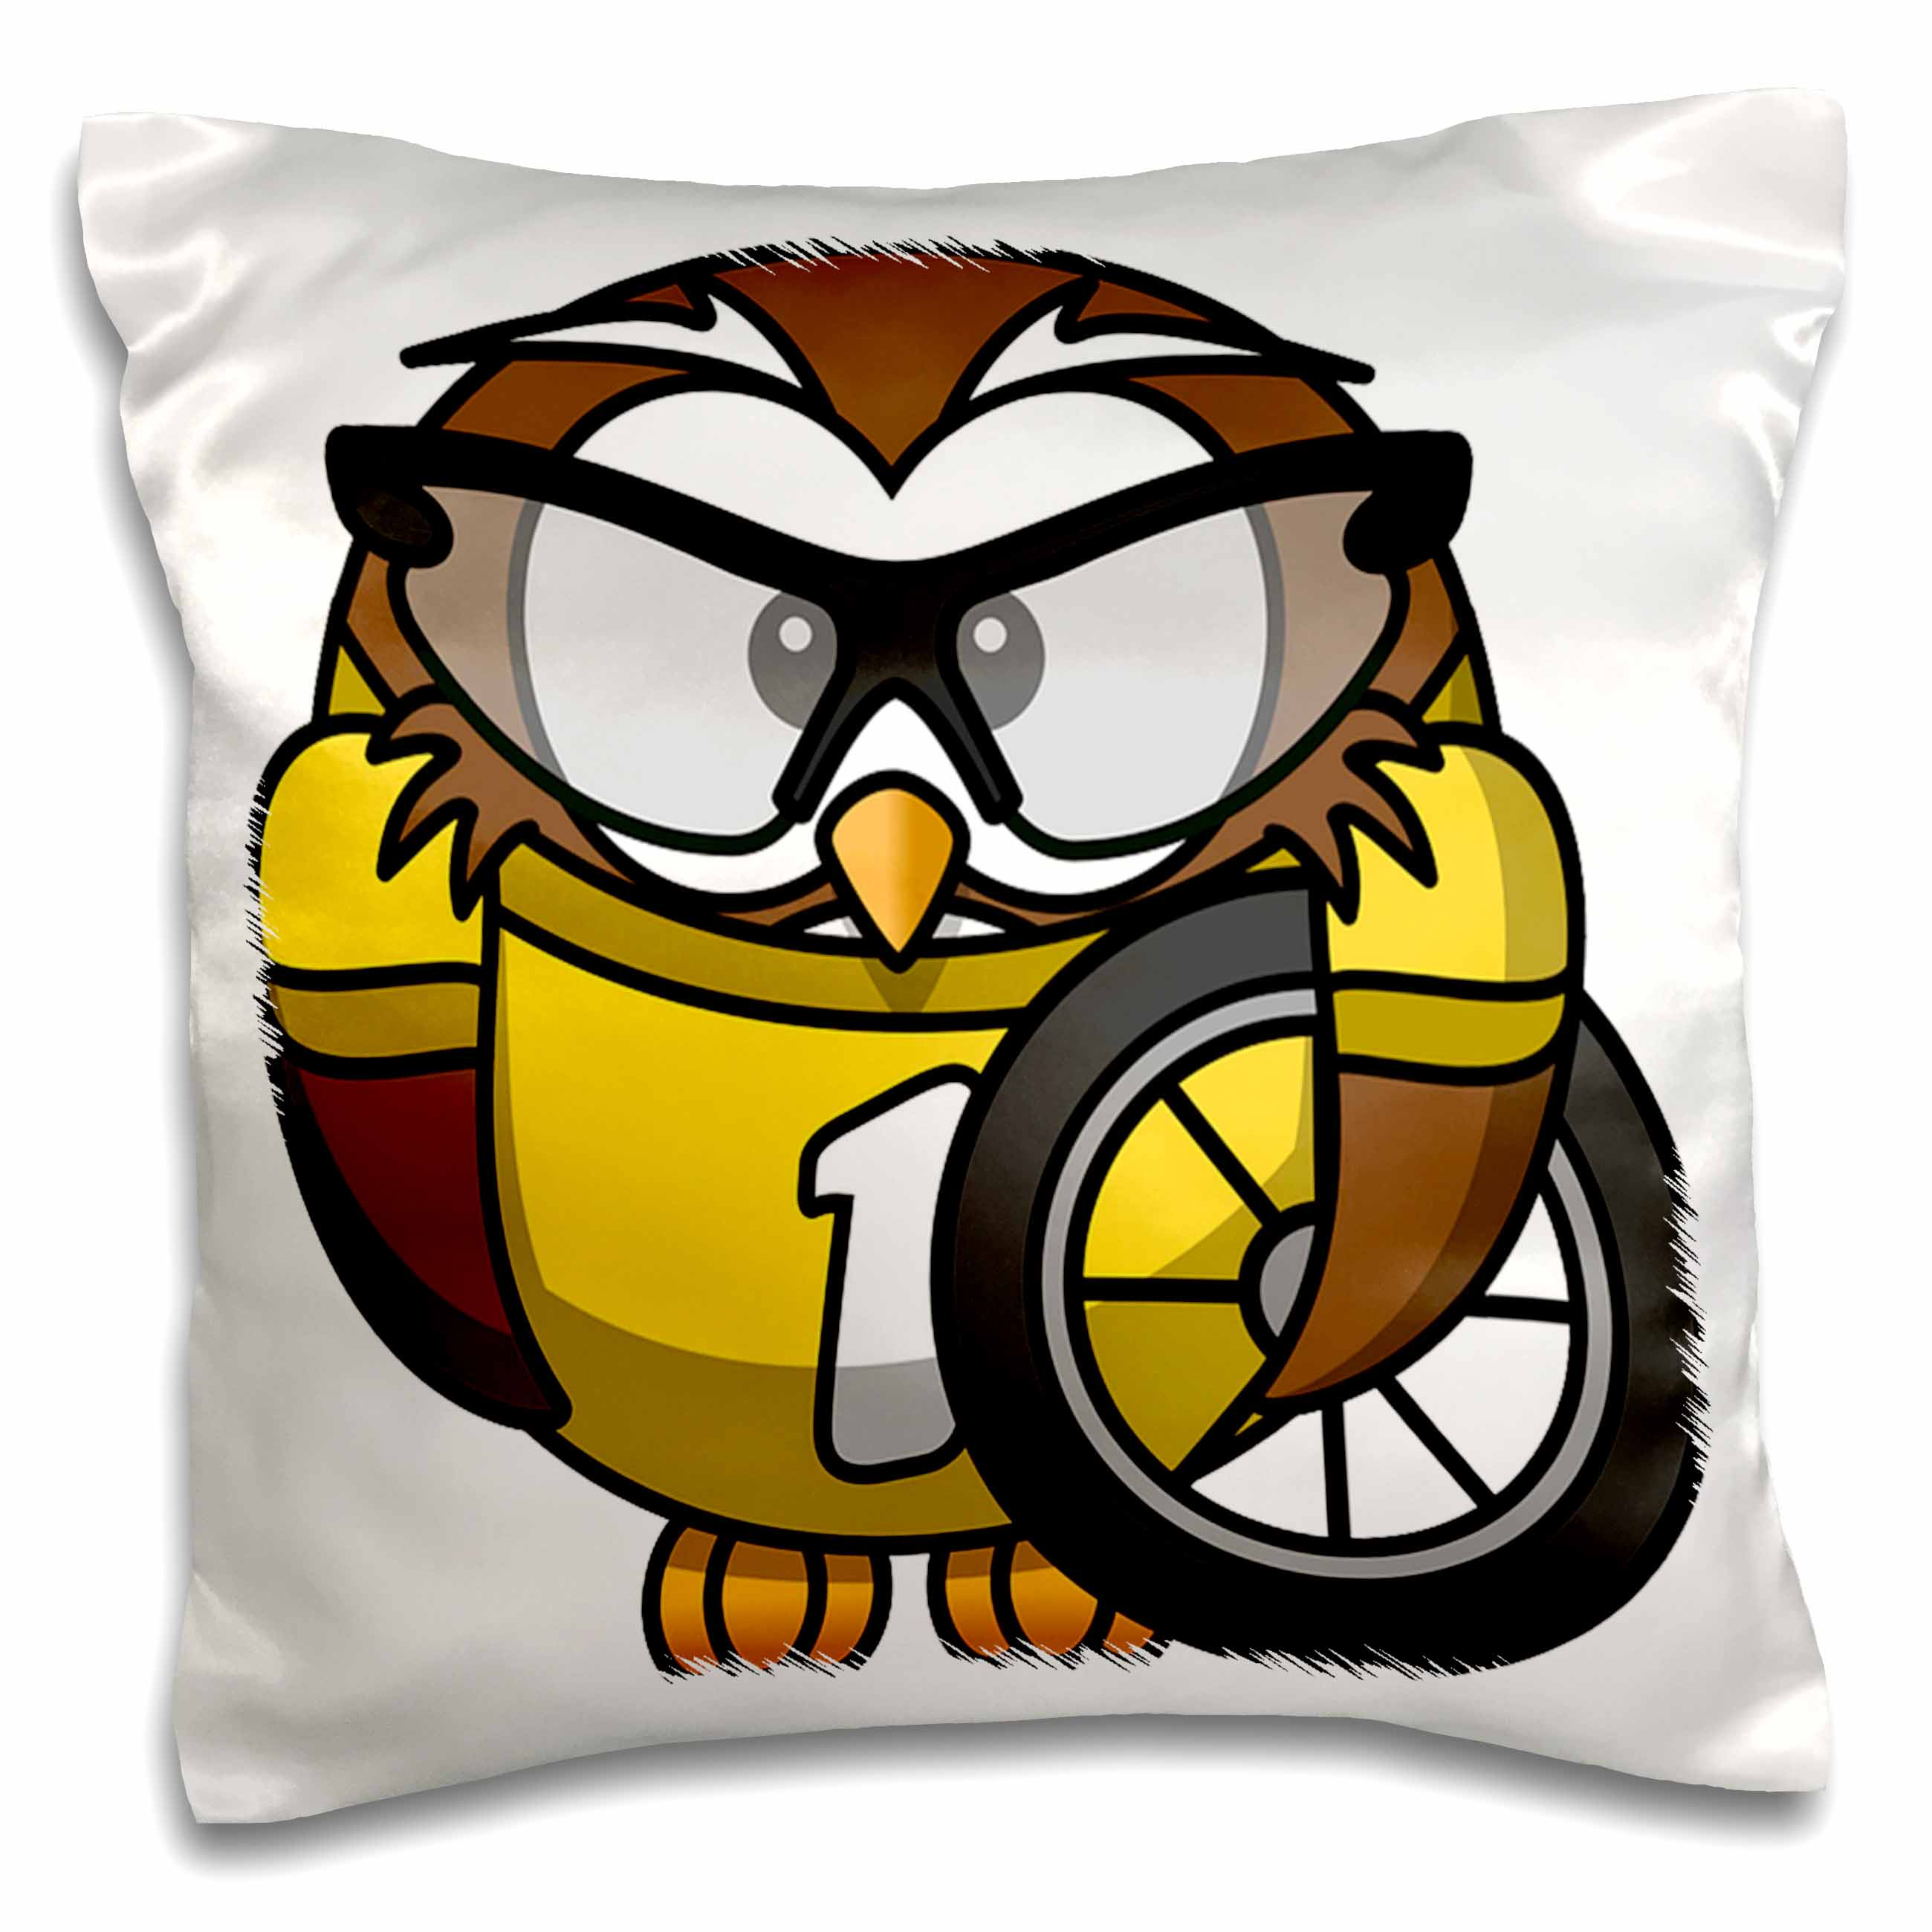 3dRose Print of Cartoon Owl With Bike Tire And Goggles, Pillow Case, 16 by 16-inch